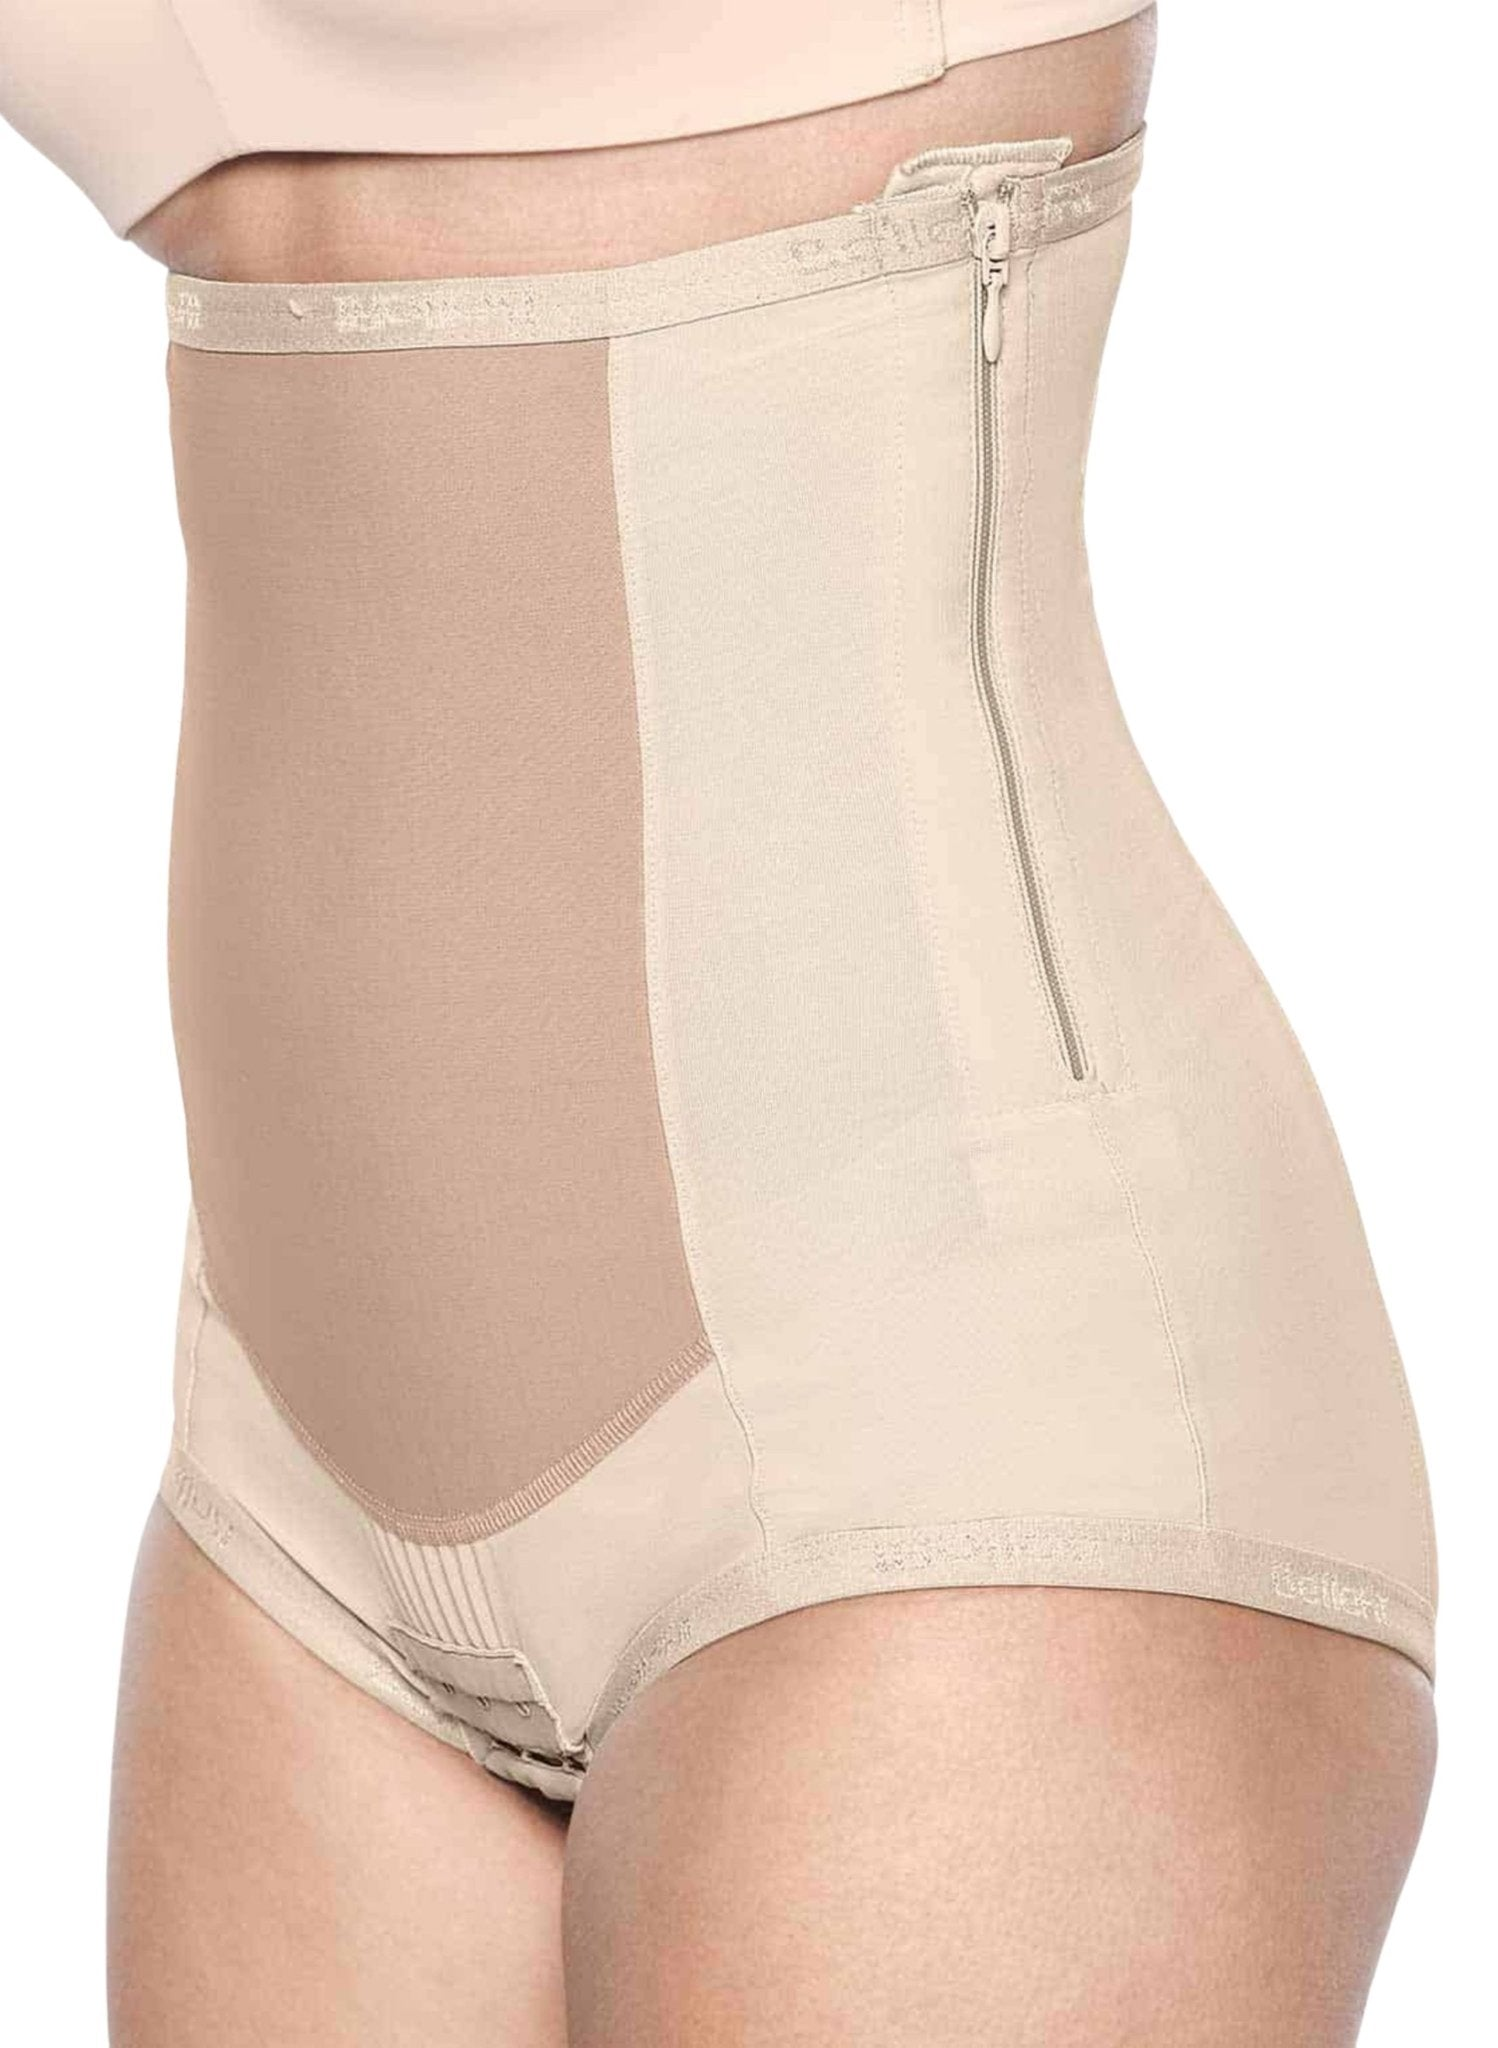 Girdle with Side Zipper for Natural Birth - Mums and Bumps